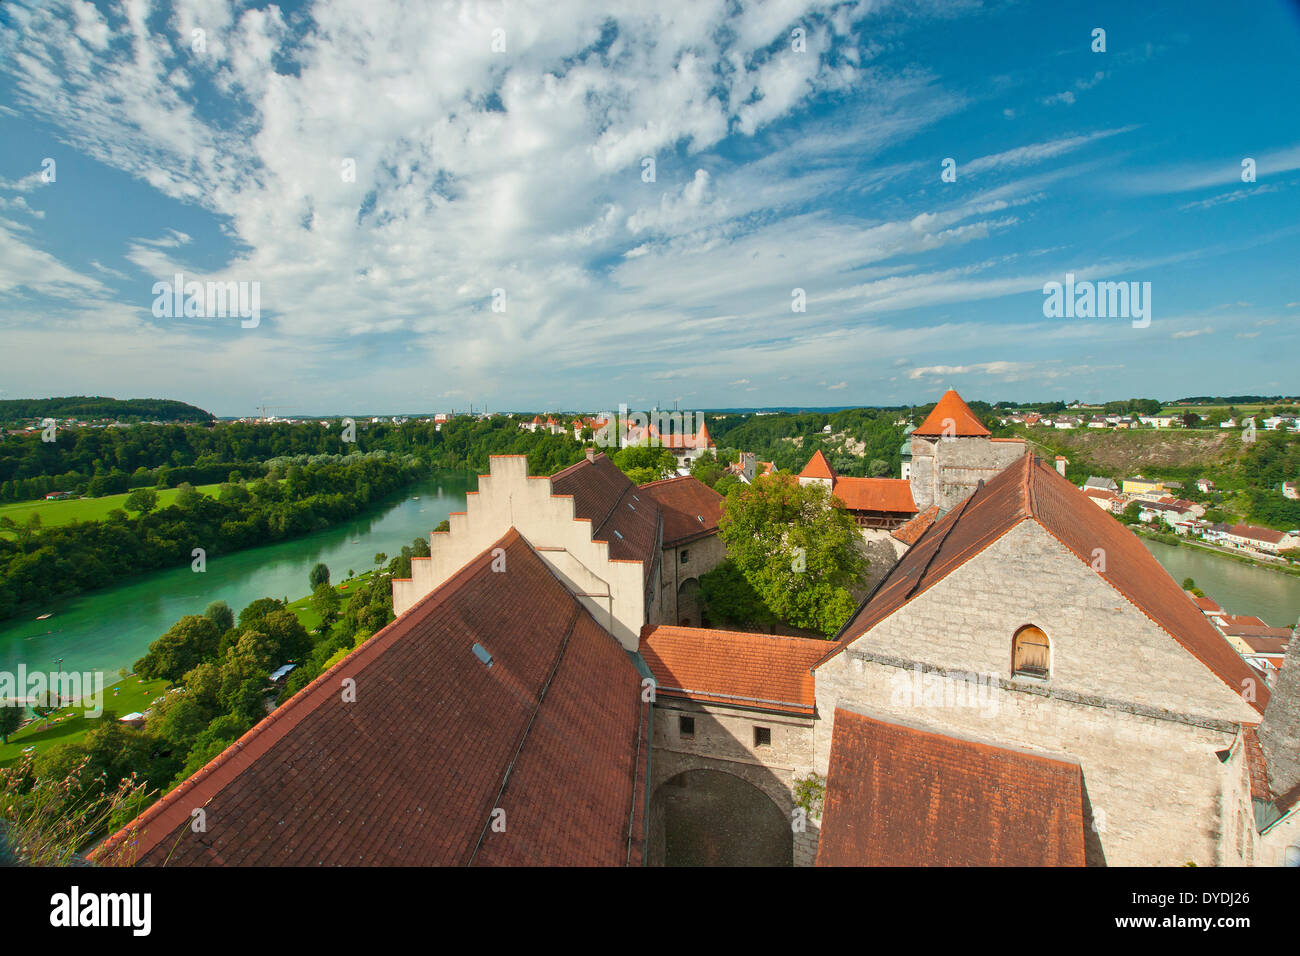 Bavaria Germany Europe building construction historical old wall architecture facade architecture style Burghausen Stock Photo